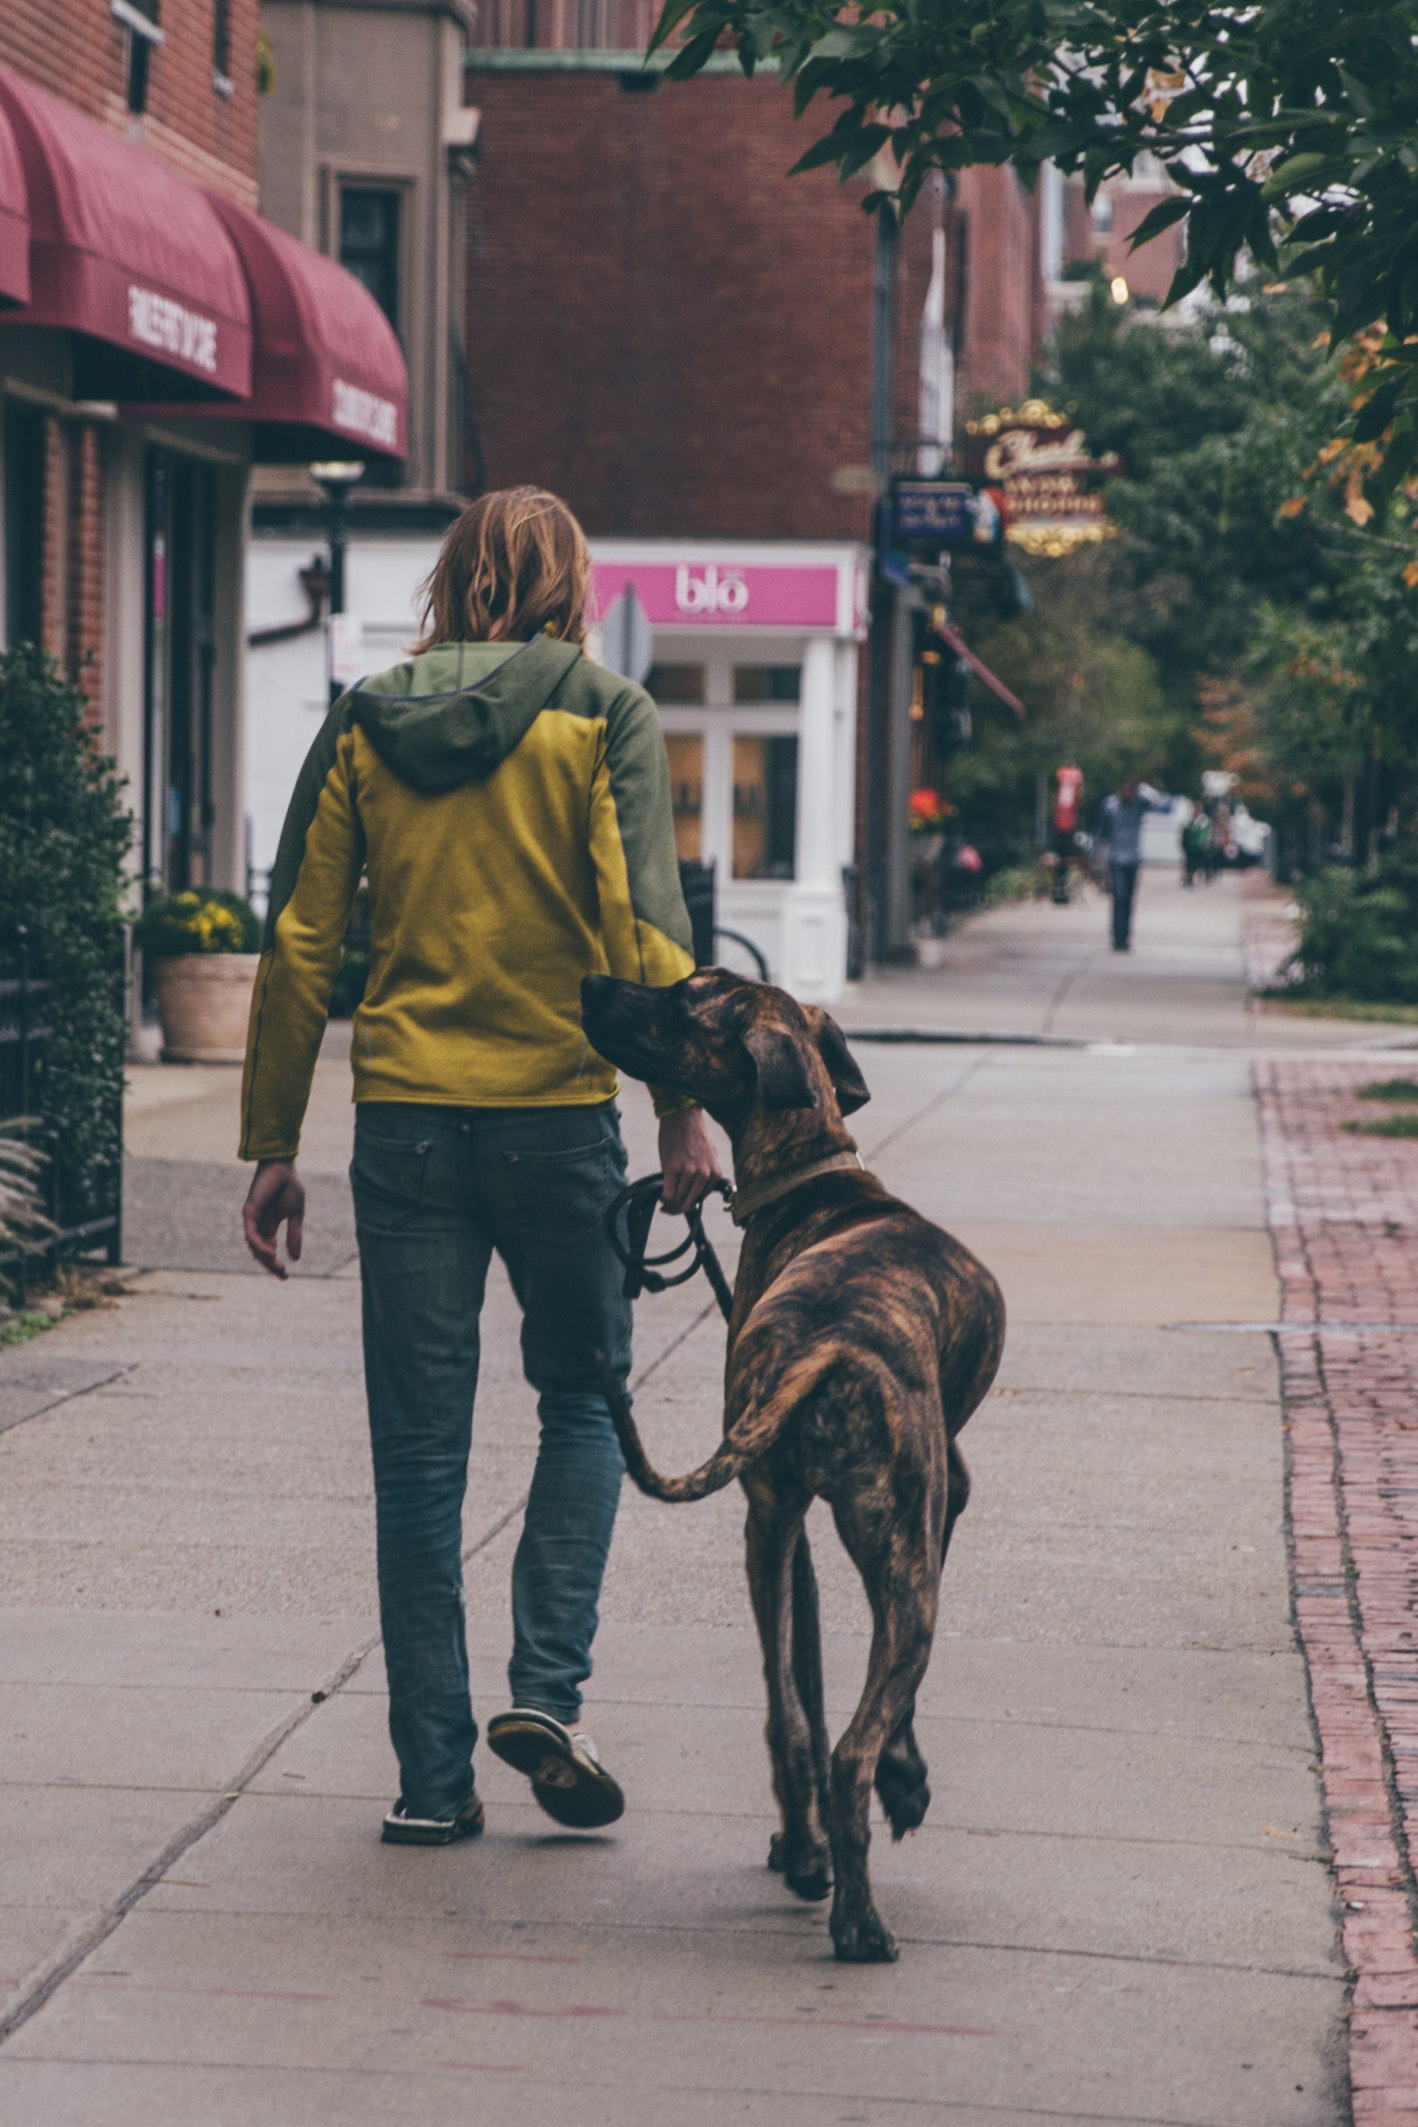 A man walking in the street with his dog photo